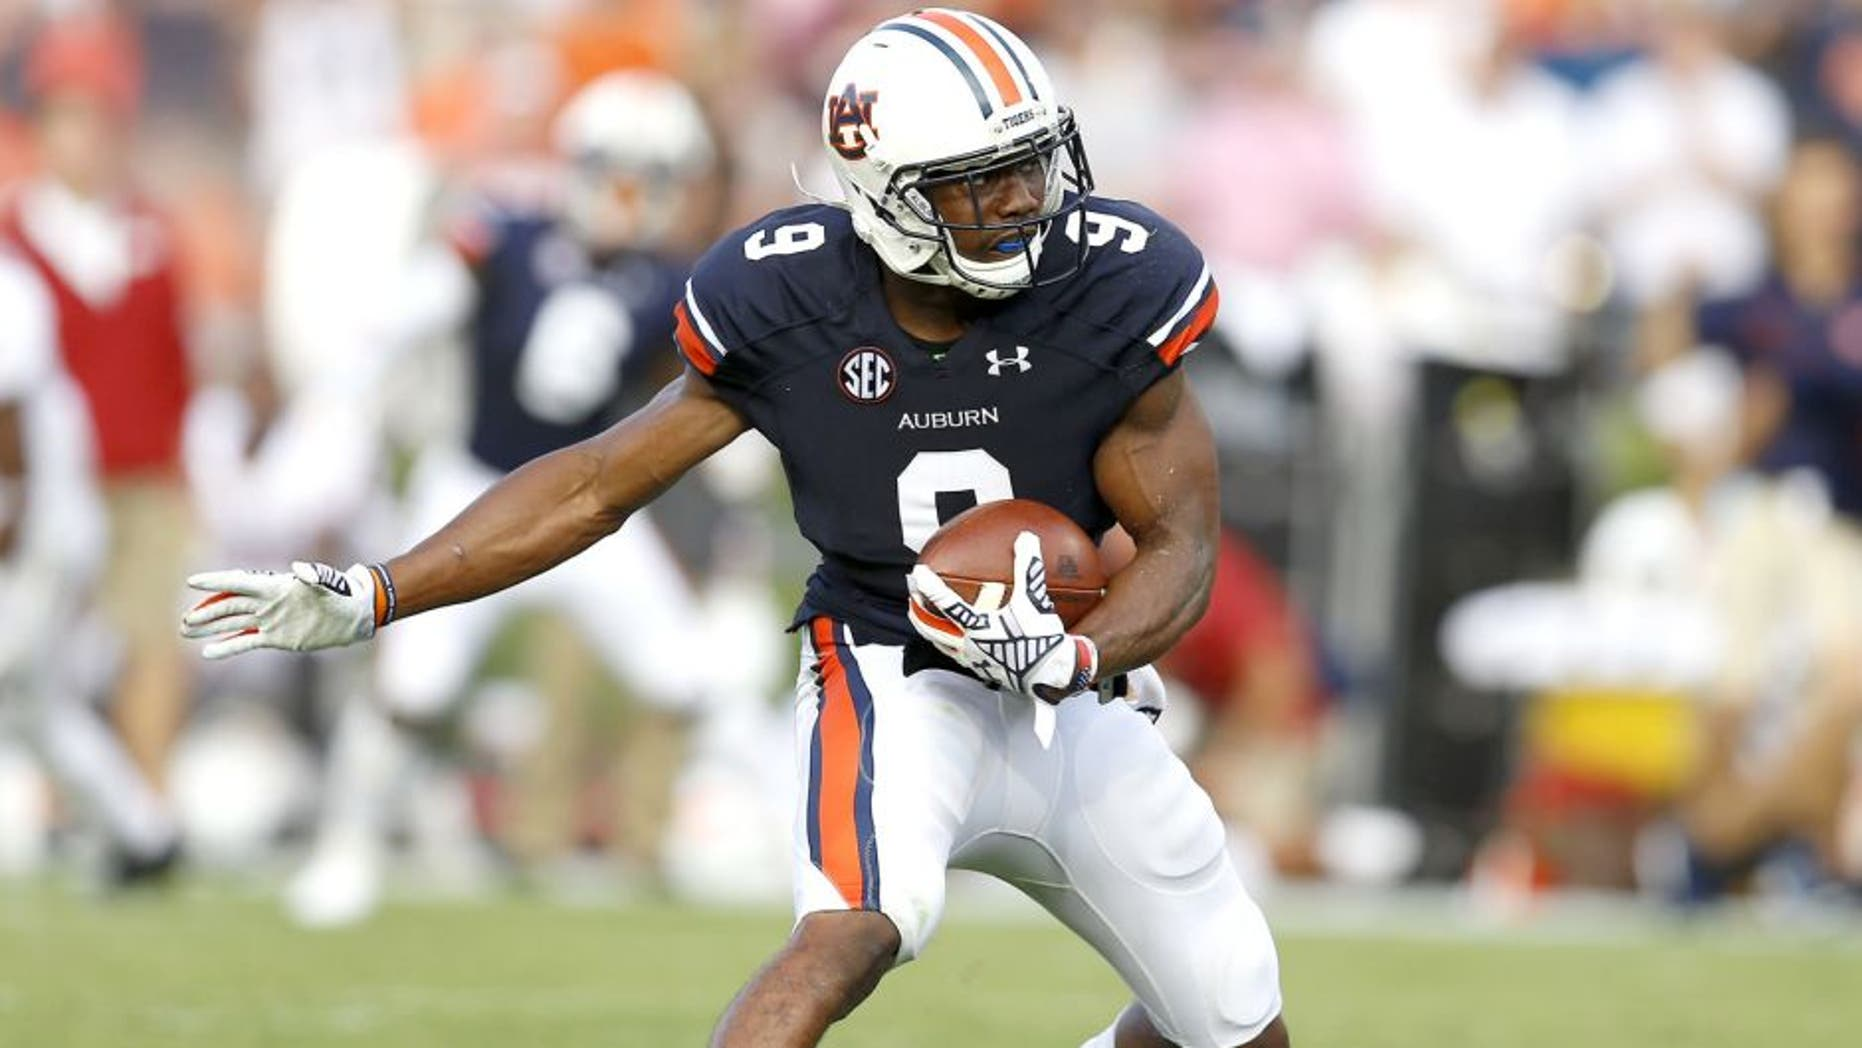 AUBURN, AL - AUGUST 30: Defensive back Jermaine Whitehead #9 of the Auburn Tigers intercepts a pass during the game against the Arkansas Razorbacks at Jordan Hare Stadium on August 30, 2014 in Auburn, Alabama. (Photo by Mike Zarrilli/Getty Images)